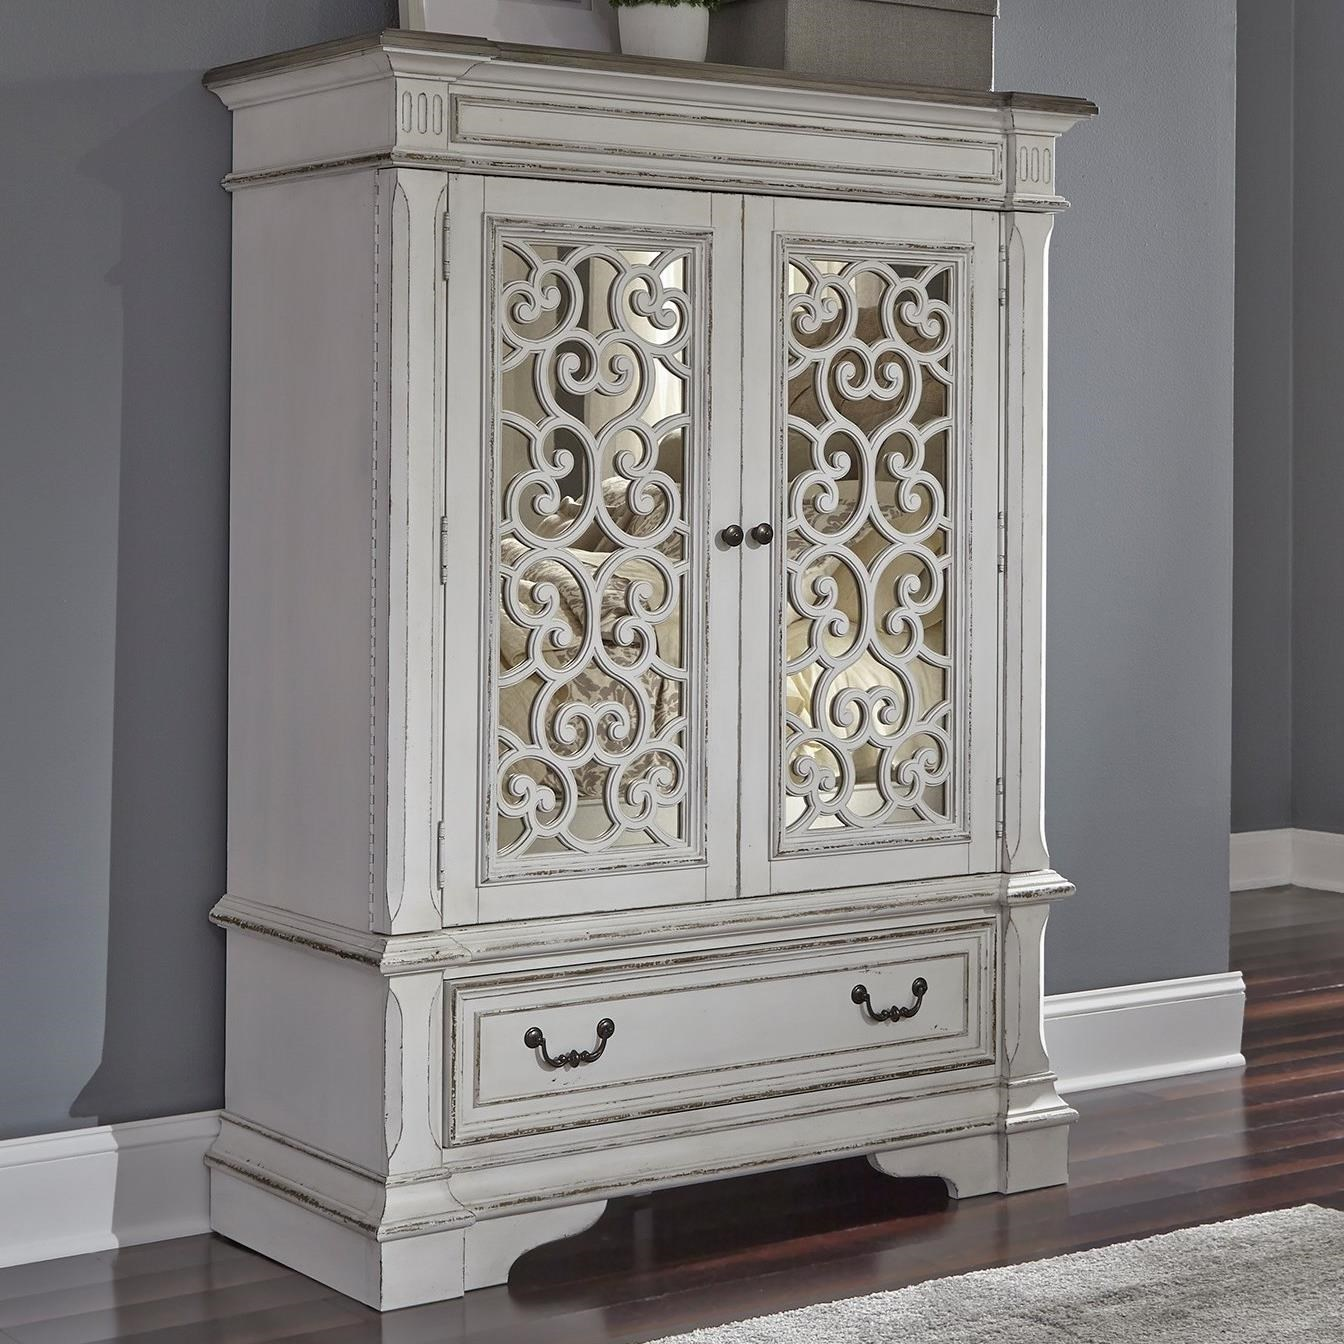 Charmant Abbey Park Traditional 2 Door 1 Drawer Chest With Mirror Panel Door Fronts  By Liberty Furniture